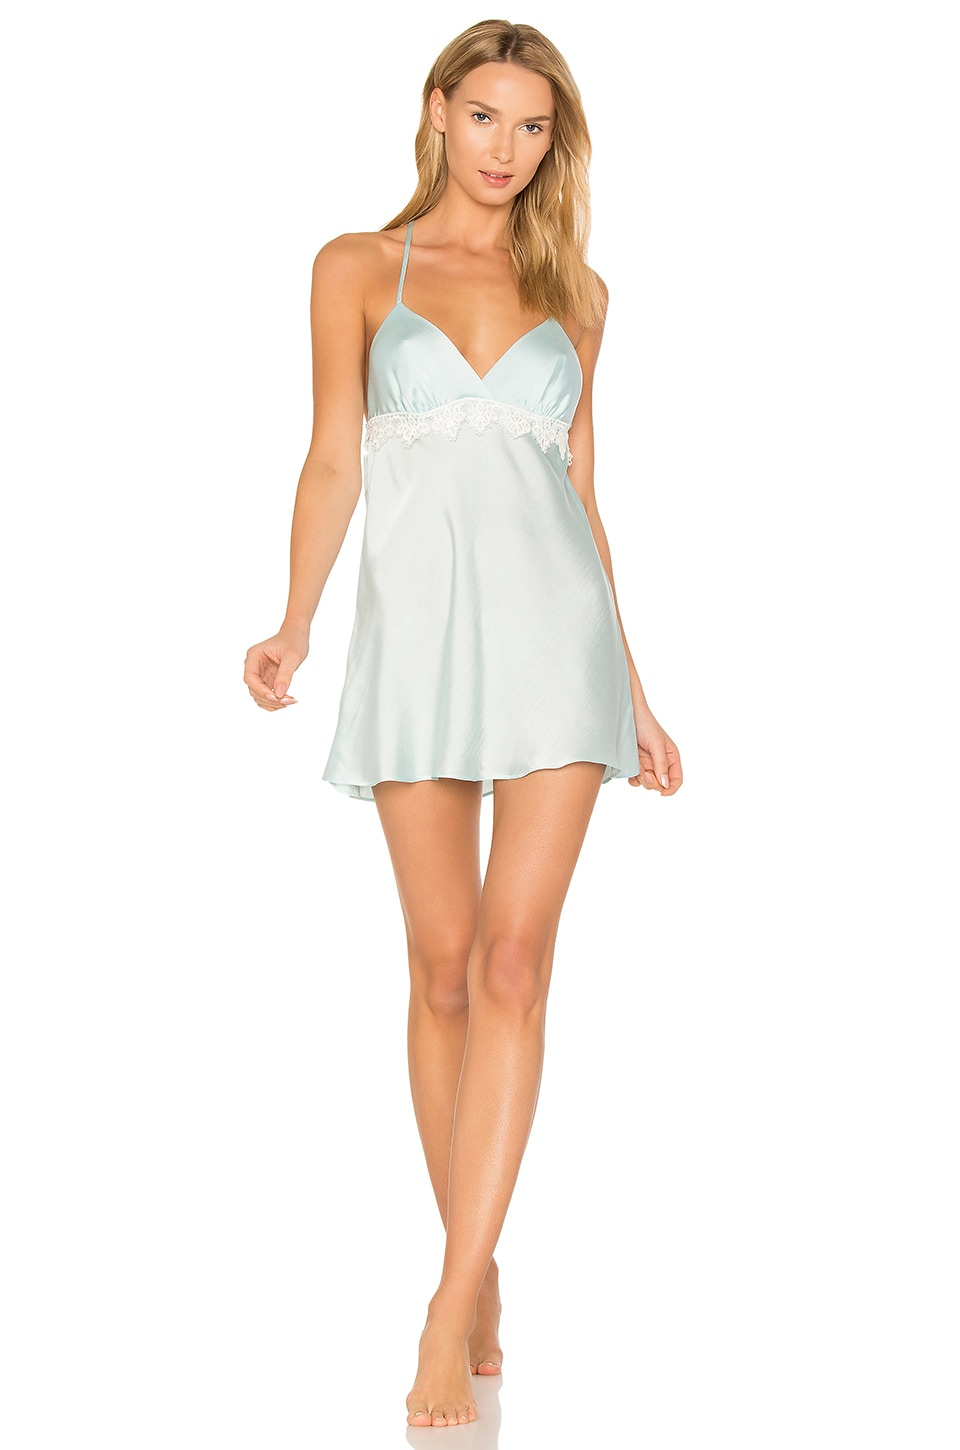 Flora Nikrooz Mira Texture Satin Lace Chemise in Bridal Blue